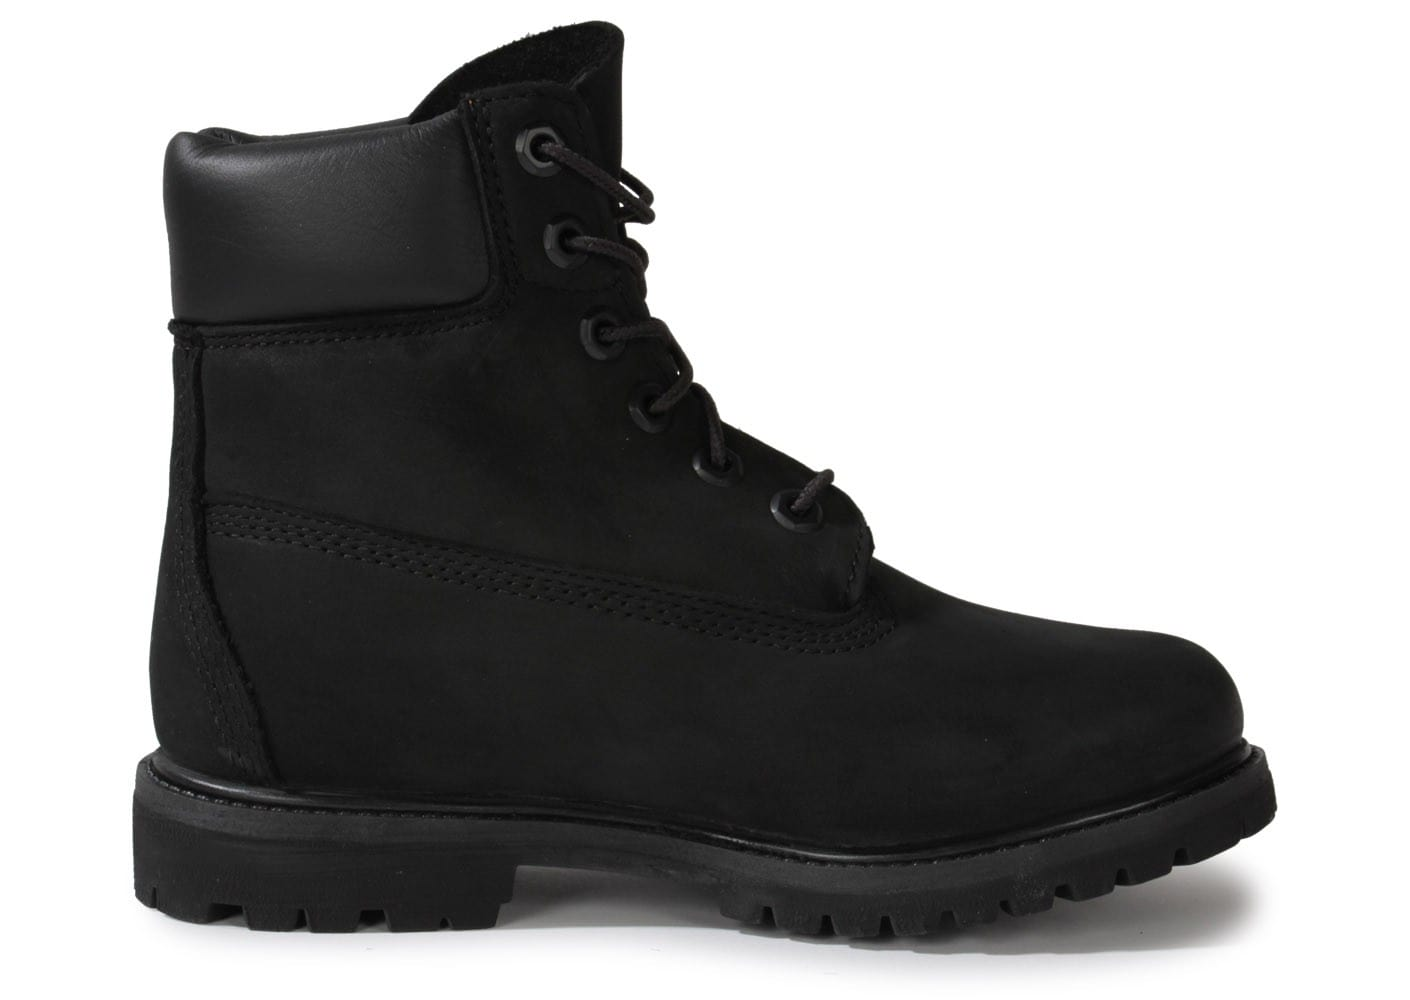 timberland 6 inch premium waterproof noire chaussures. Black Bedroom Furniture Sets. Home Design Ideas